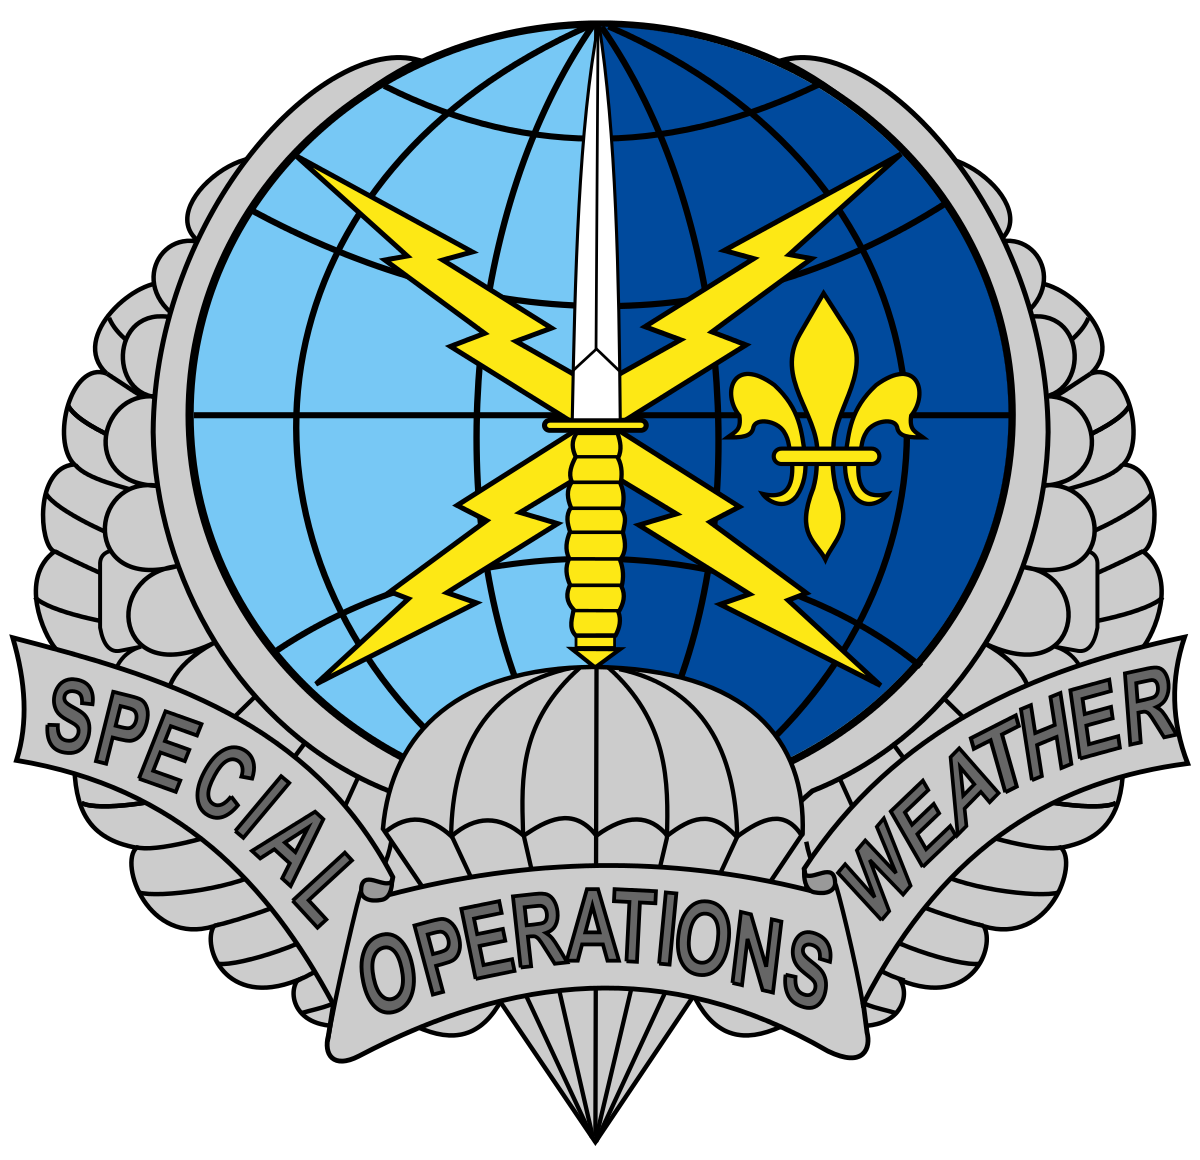 Us airforce special forces clipart royalty free download United States Air Force Special Reconnaissance - Wikipedia royalty free download